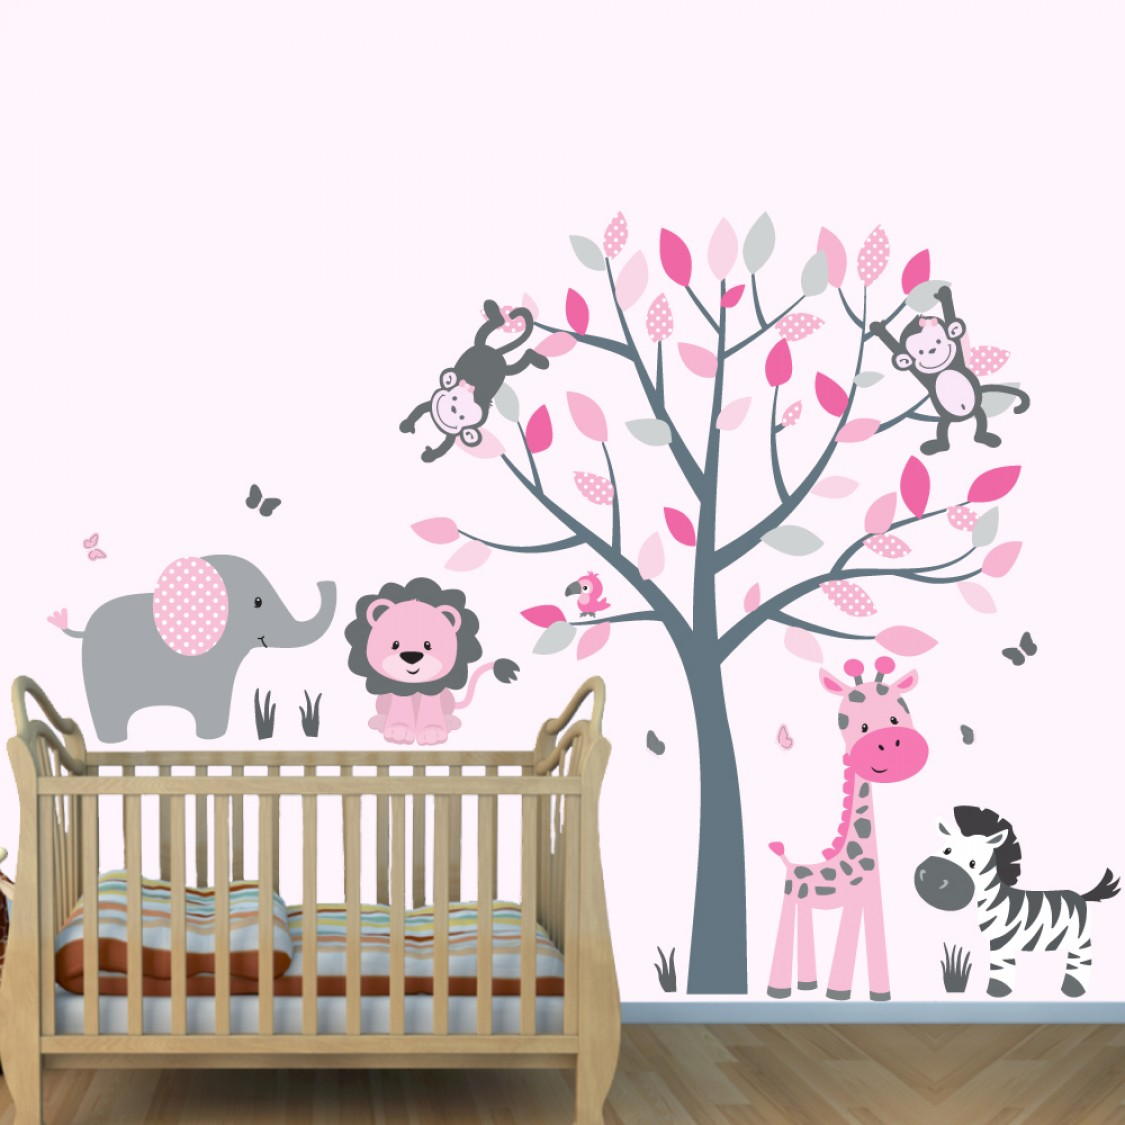 Pink and Gray Jungle Decals With Elephant Wall Decor For Boys Bedrooms